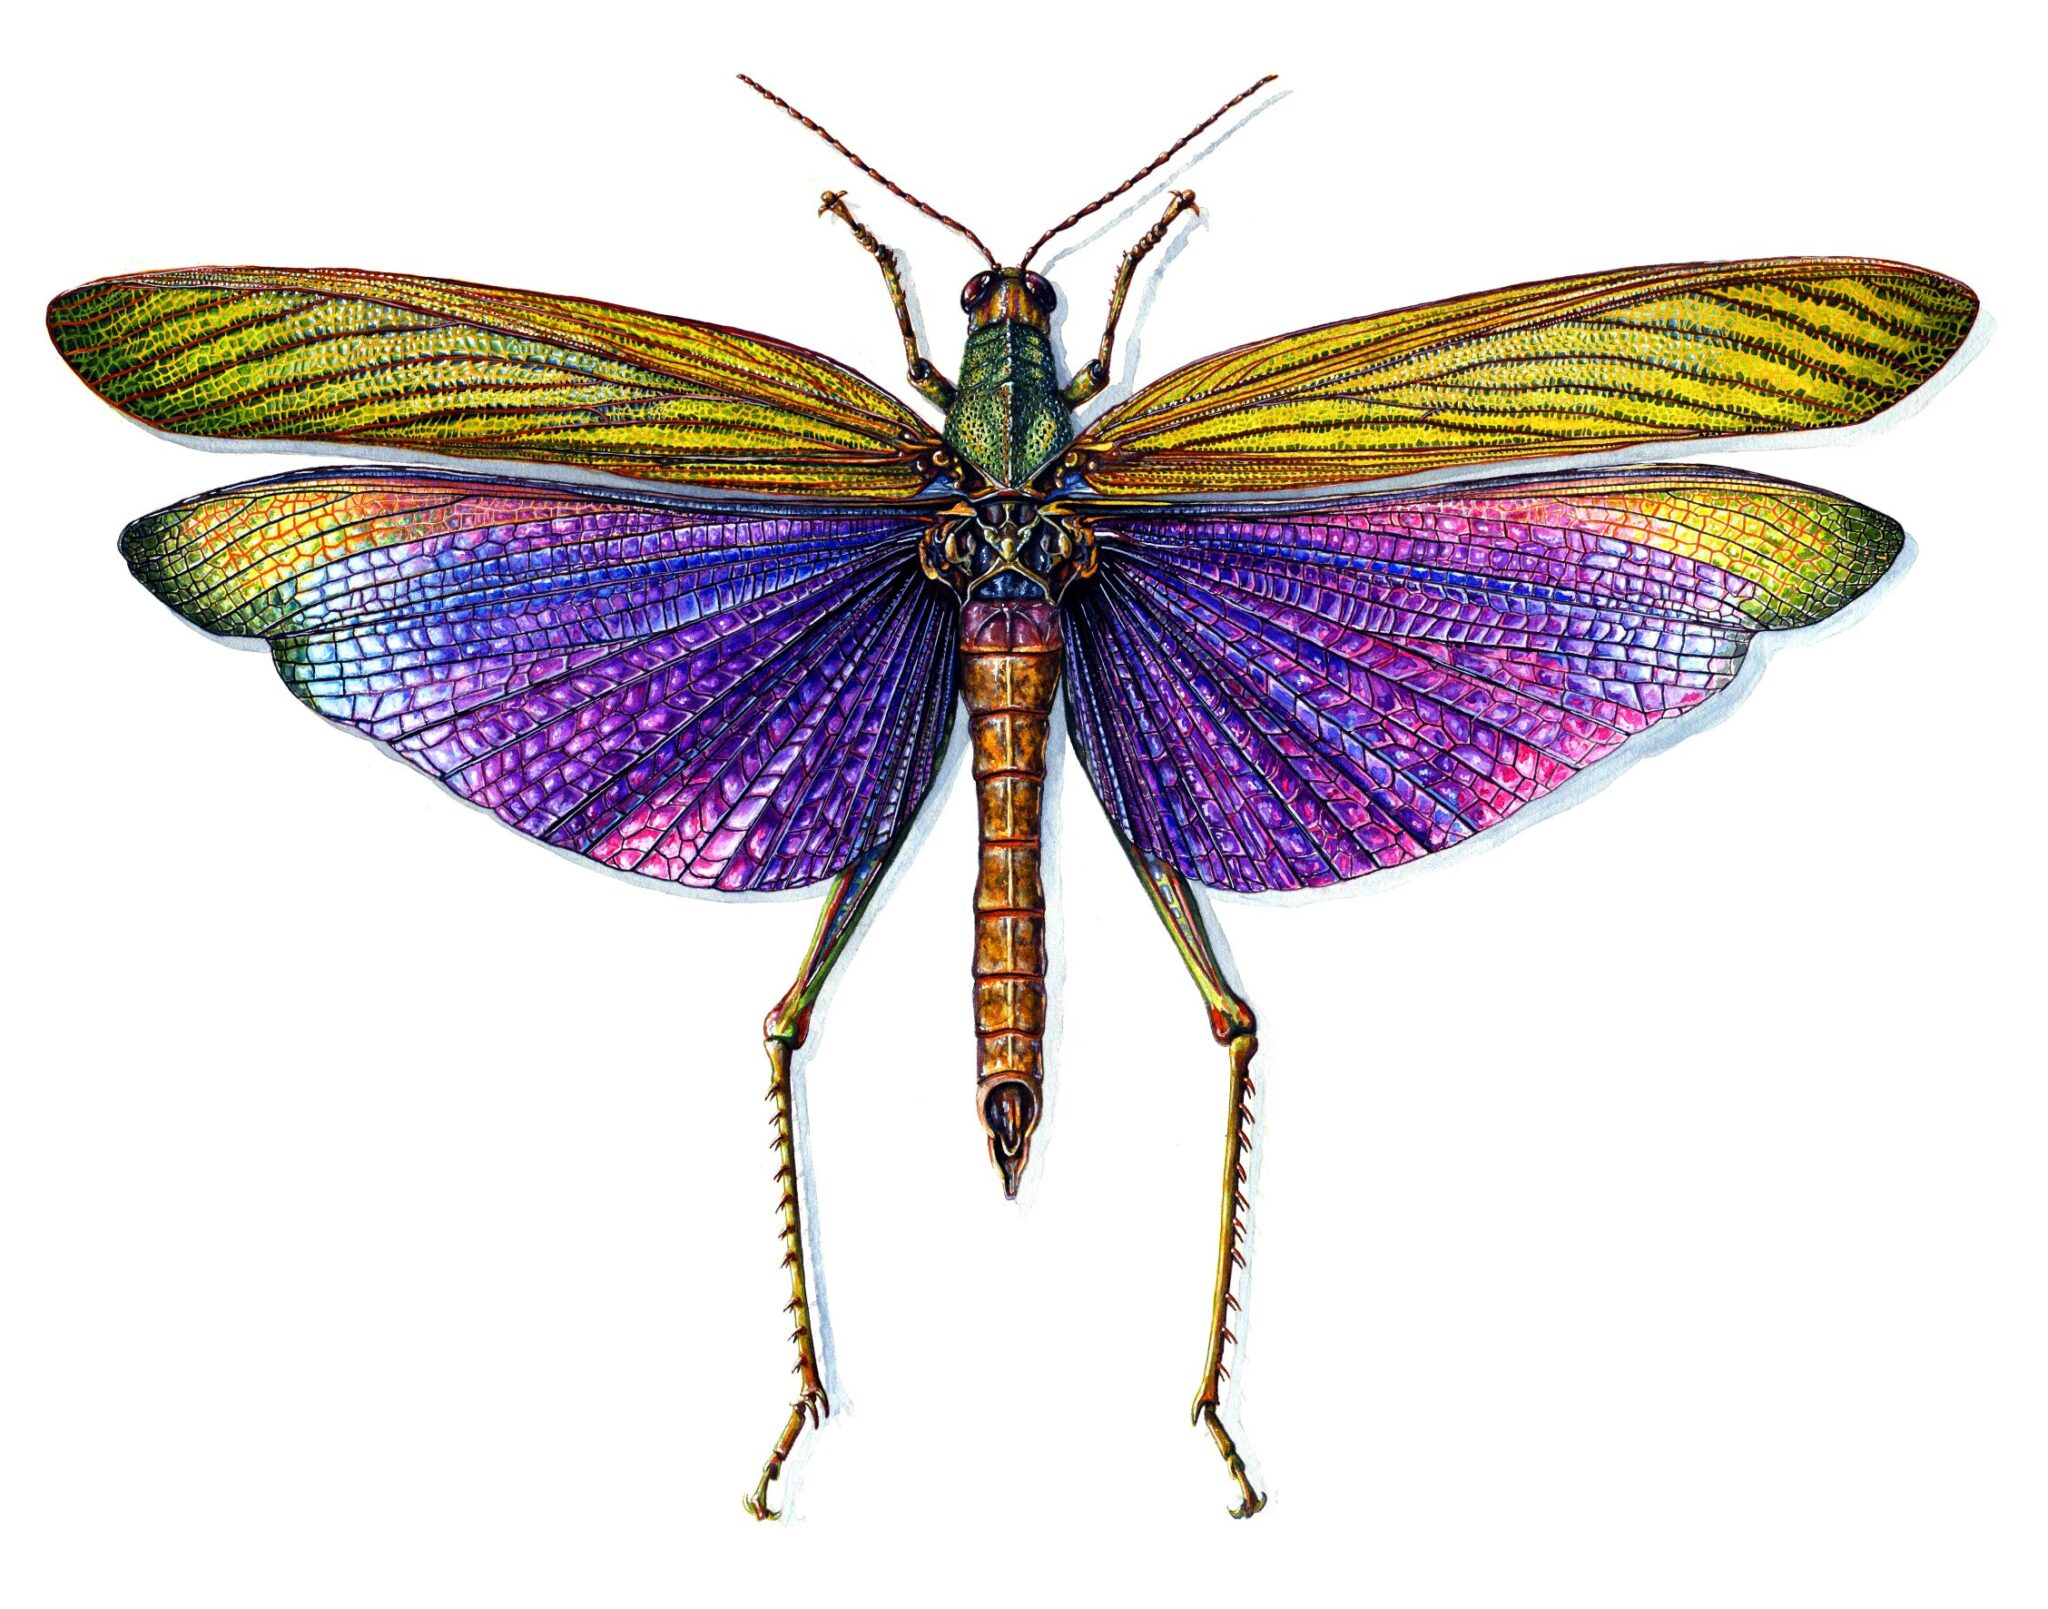 Purple-Winged Grasshopper By Martha Iserman (Petals And Wings Exhibition)